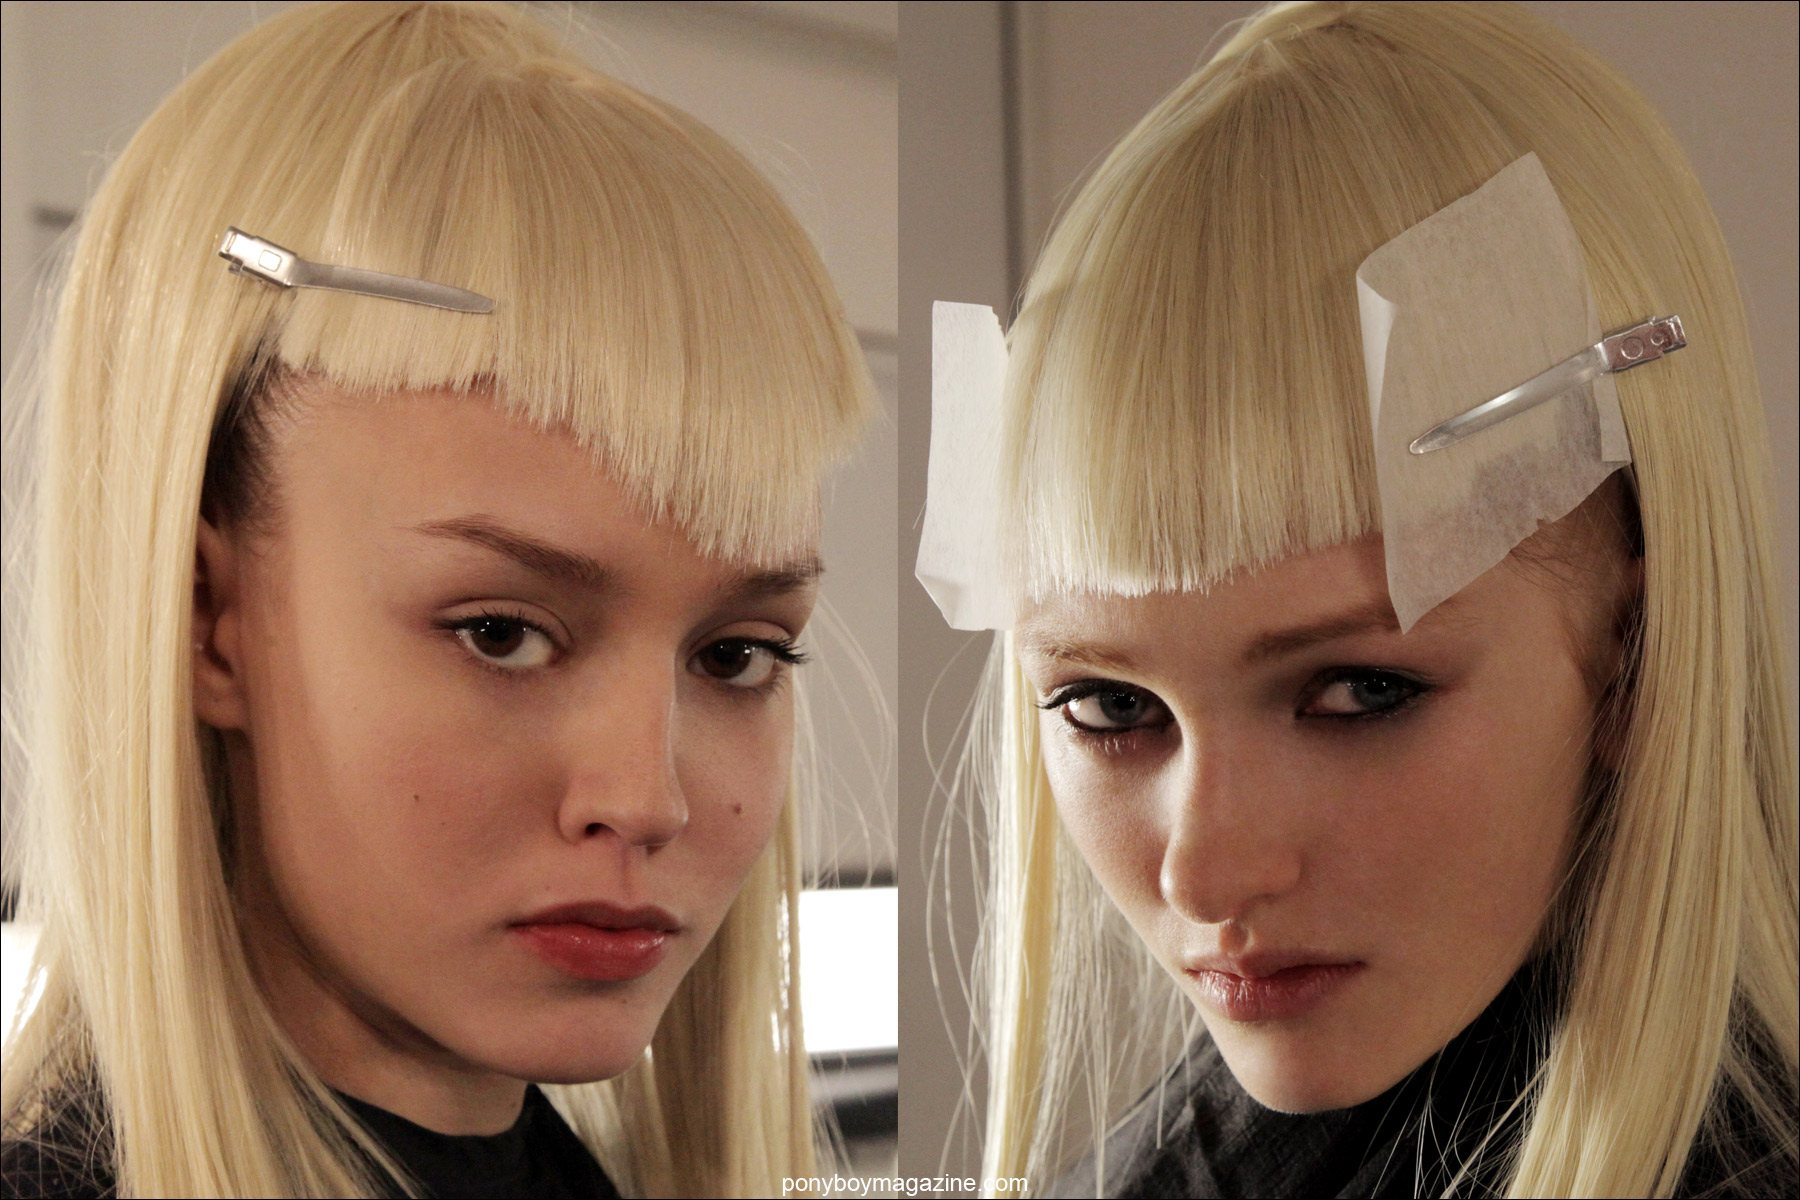 Severely cut blonde wigs, backstage at The Blonds A/W 2014 show. Photographed for Ponyboy Magazine by Alexander Thompson.